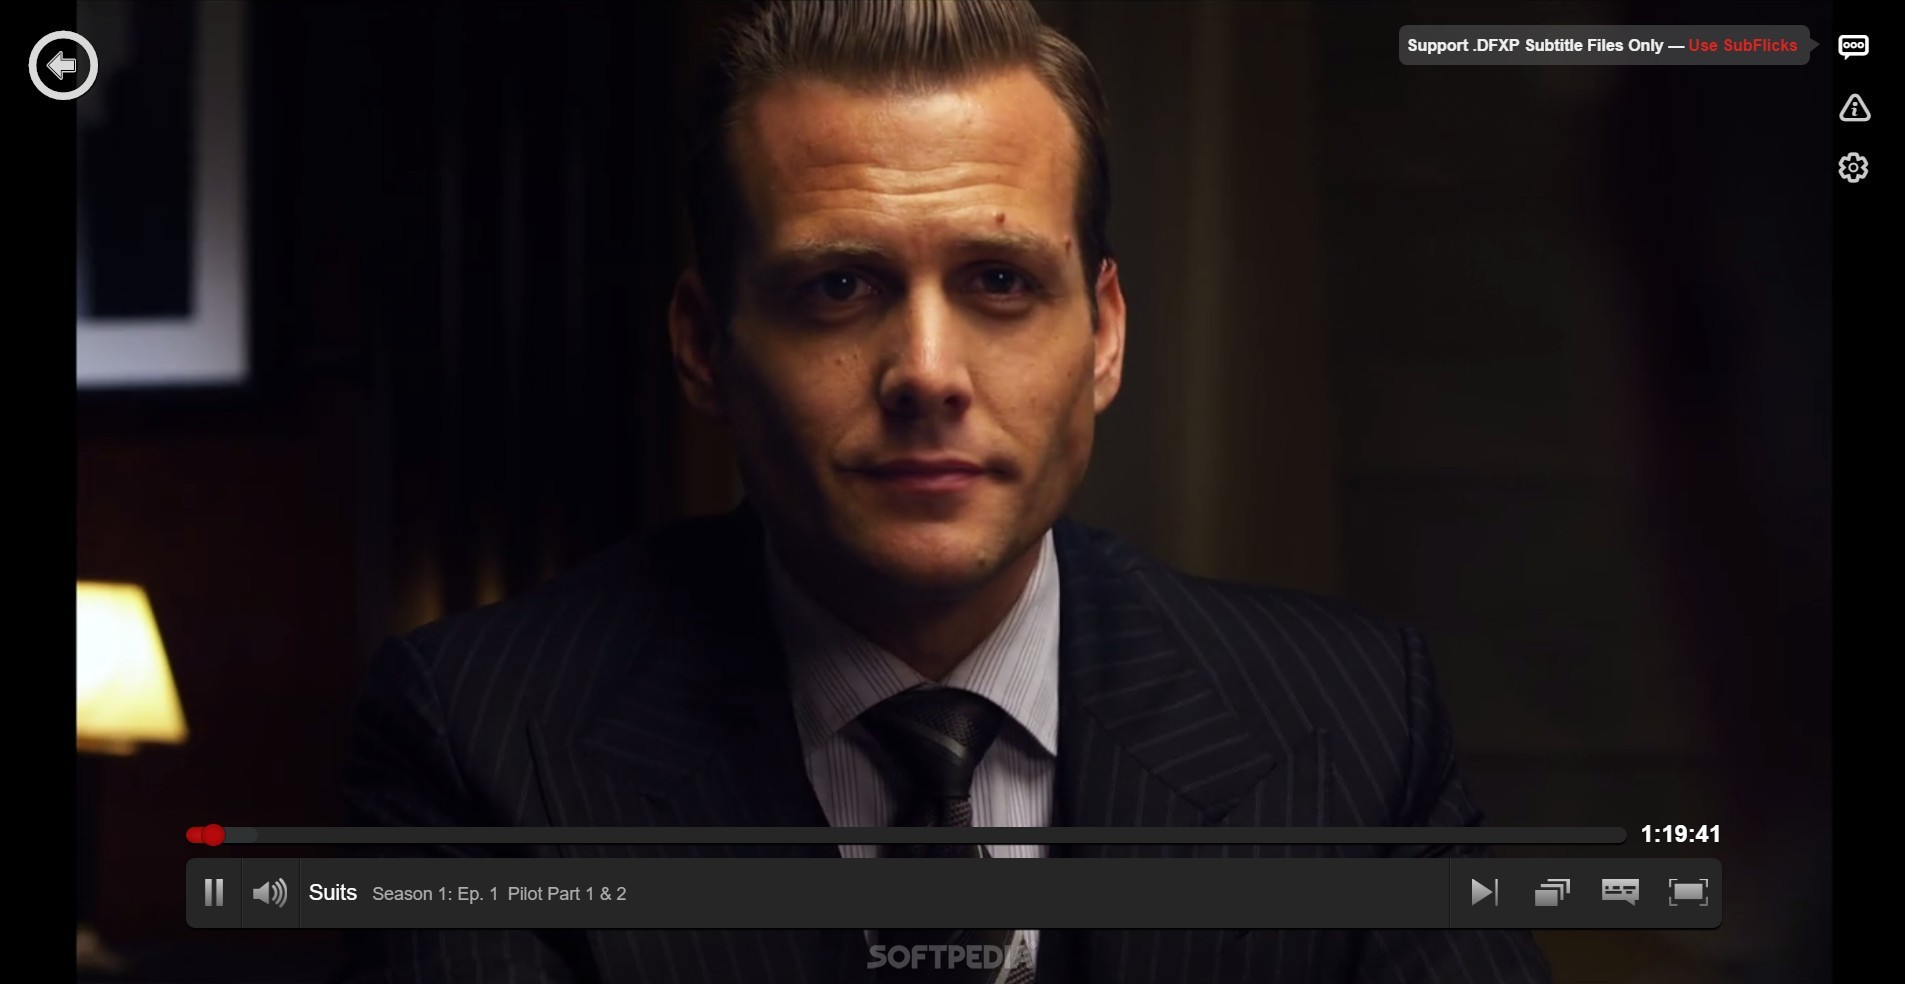 How to Add Custom Subtitles to Netflix